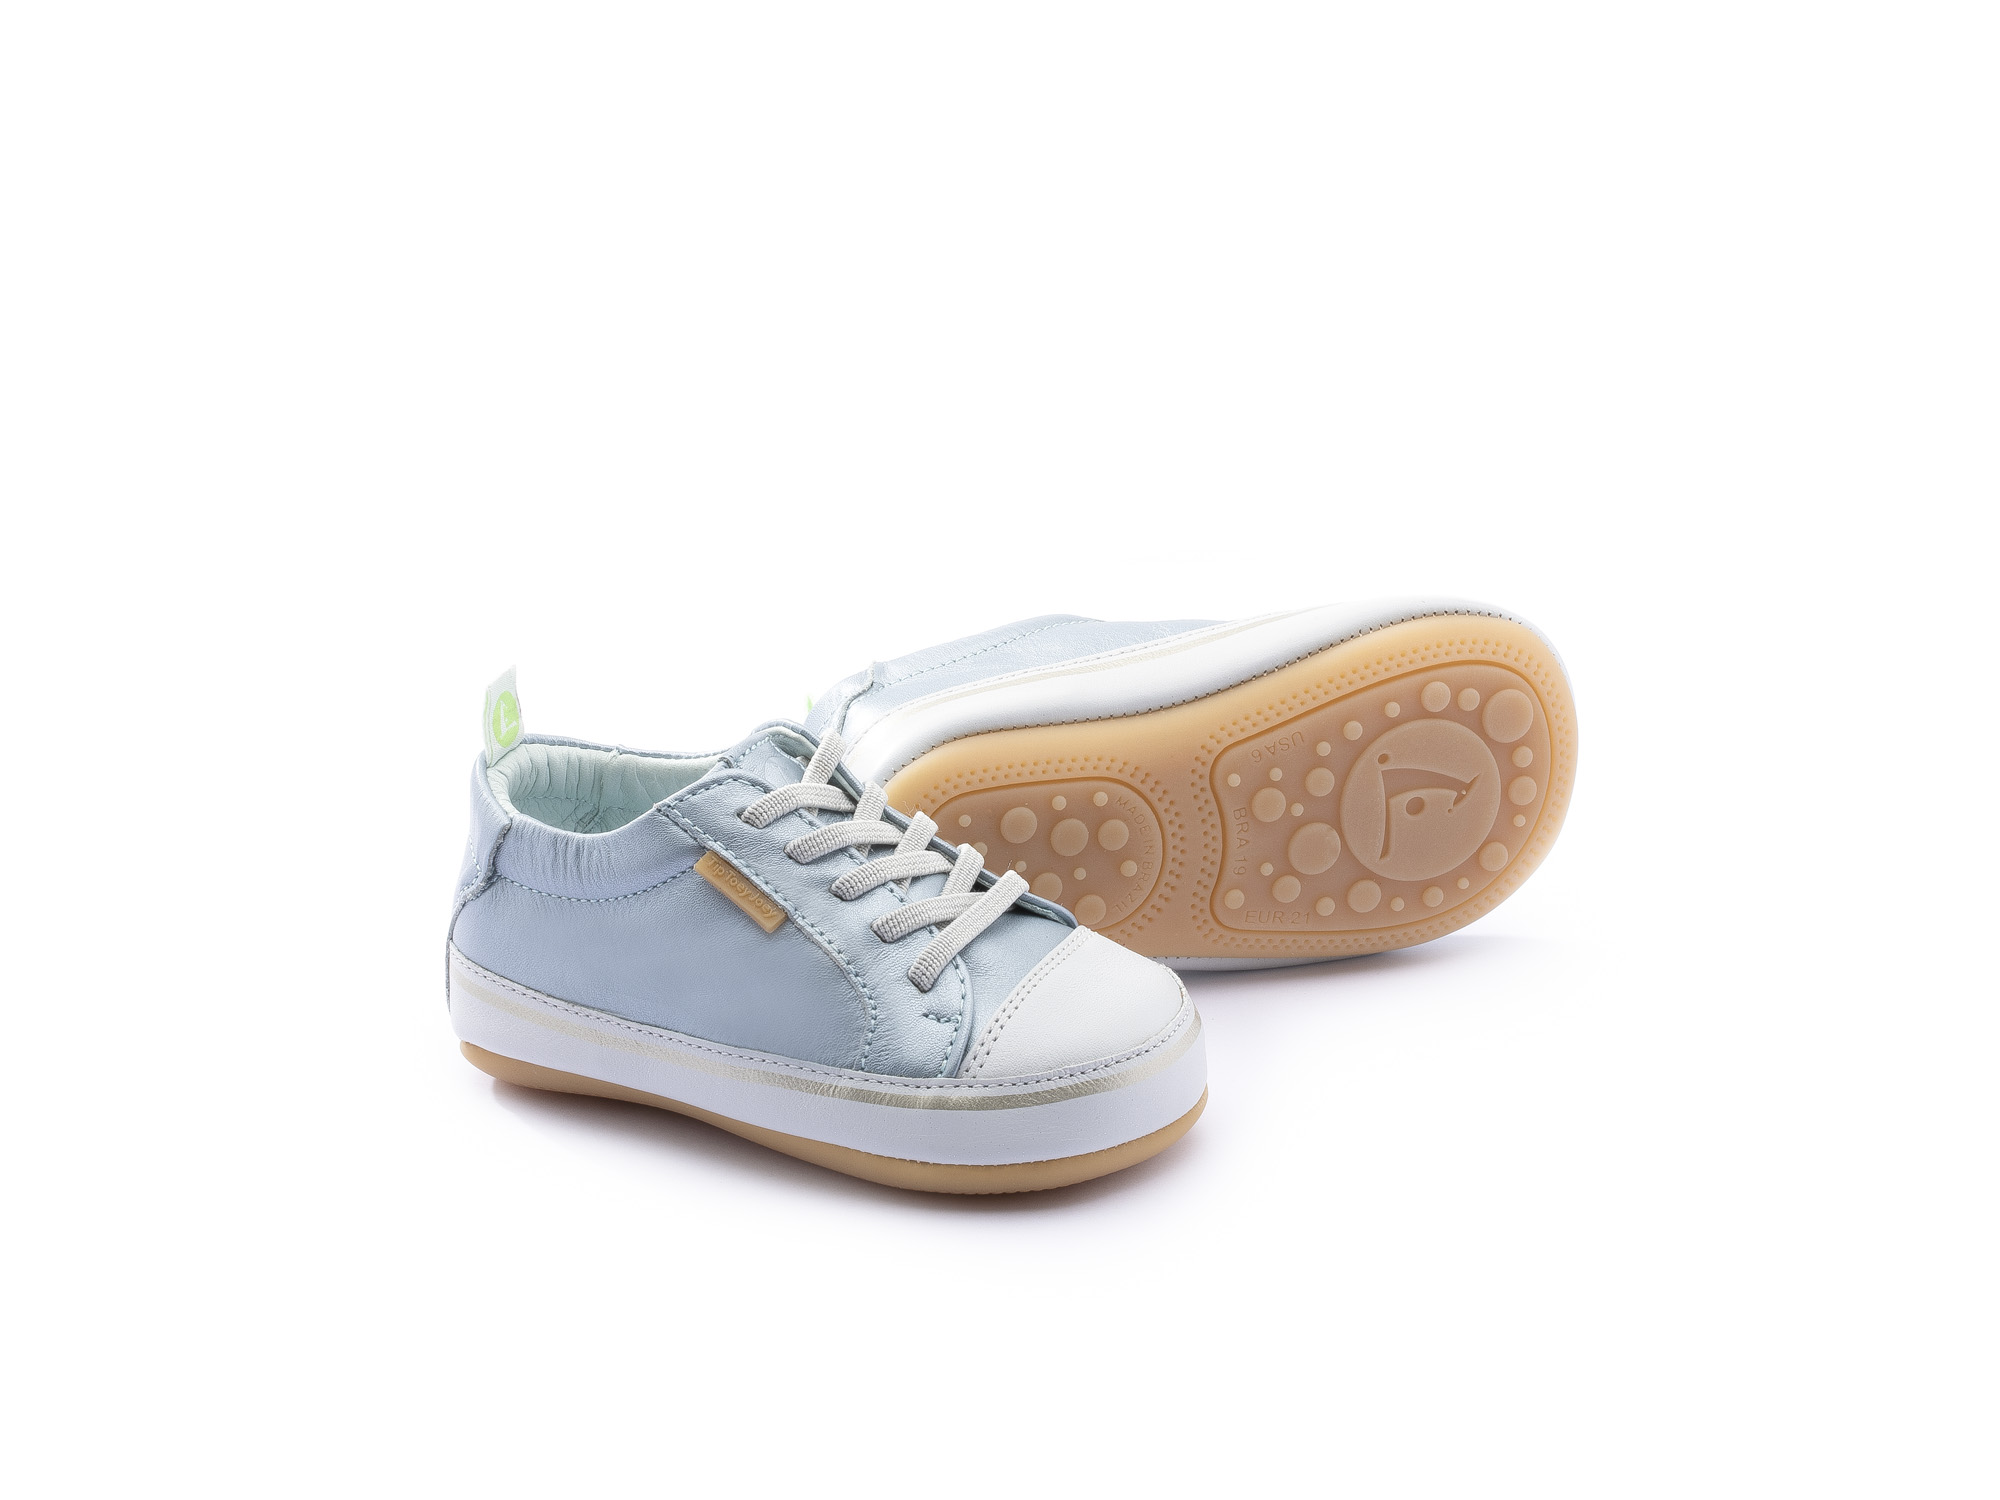 Sneaker Casual Funky Antique Blue/ Blue Fish Pearl Baby 0 à 2 anos - 0